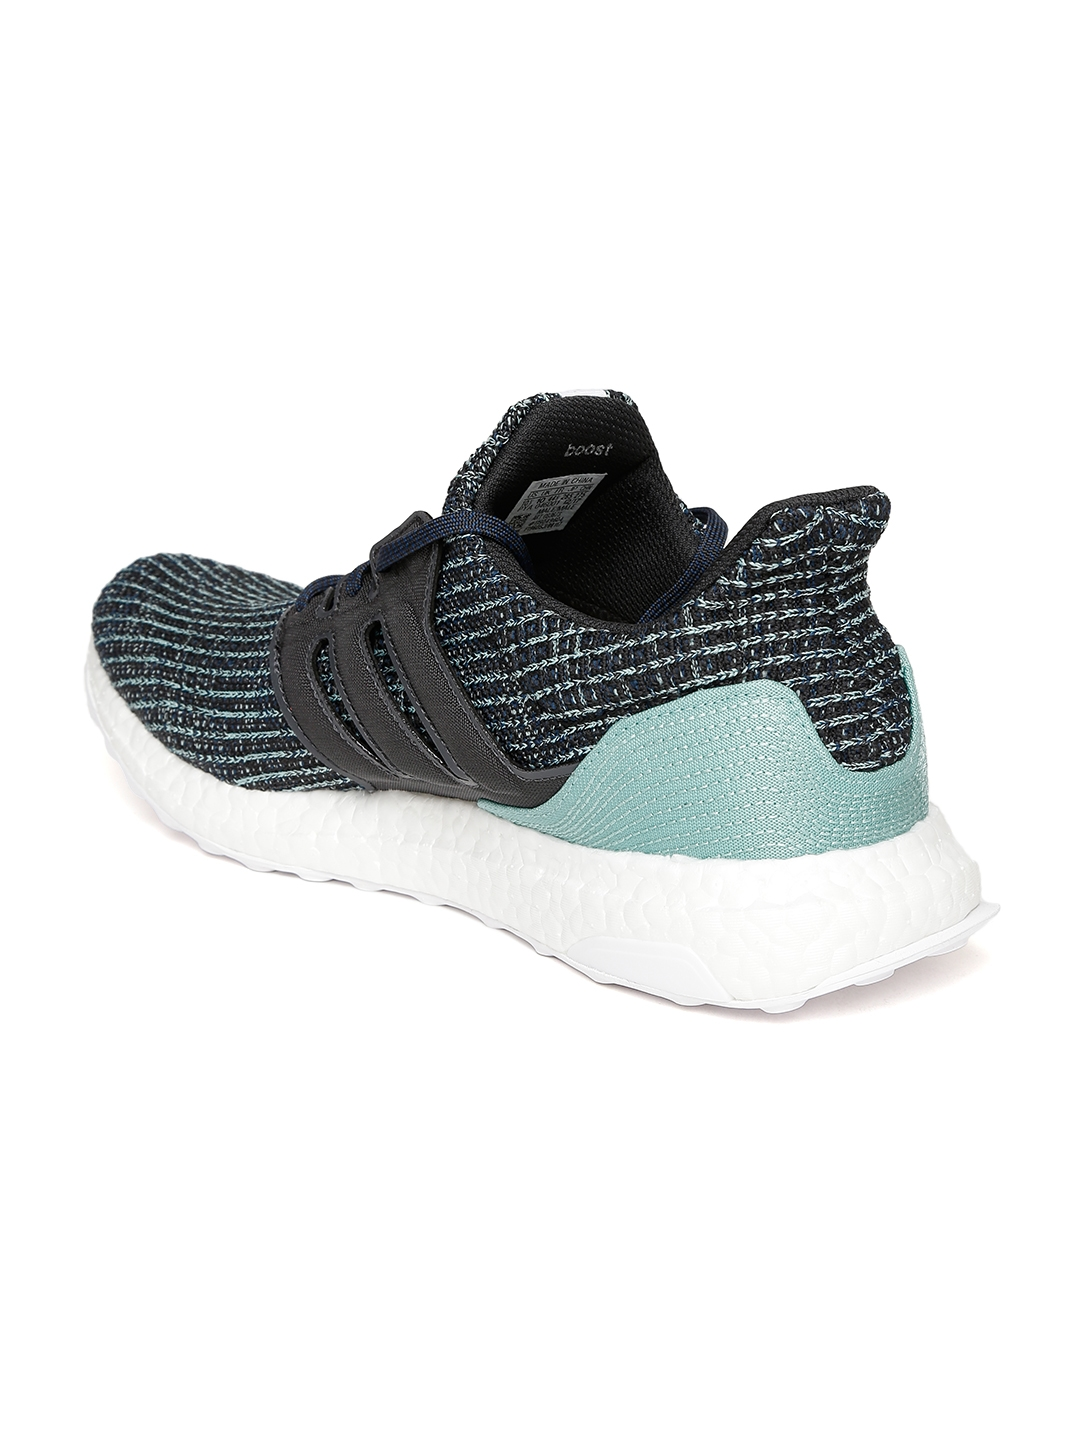 1f7a1158586 Buy ADIDAS Men Blue   Black Ultraboost PARLEY Running Shoes - Sports ...